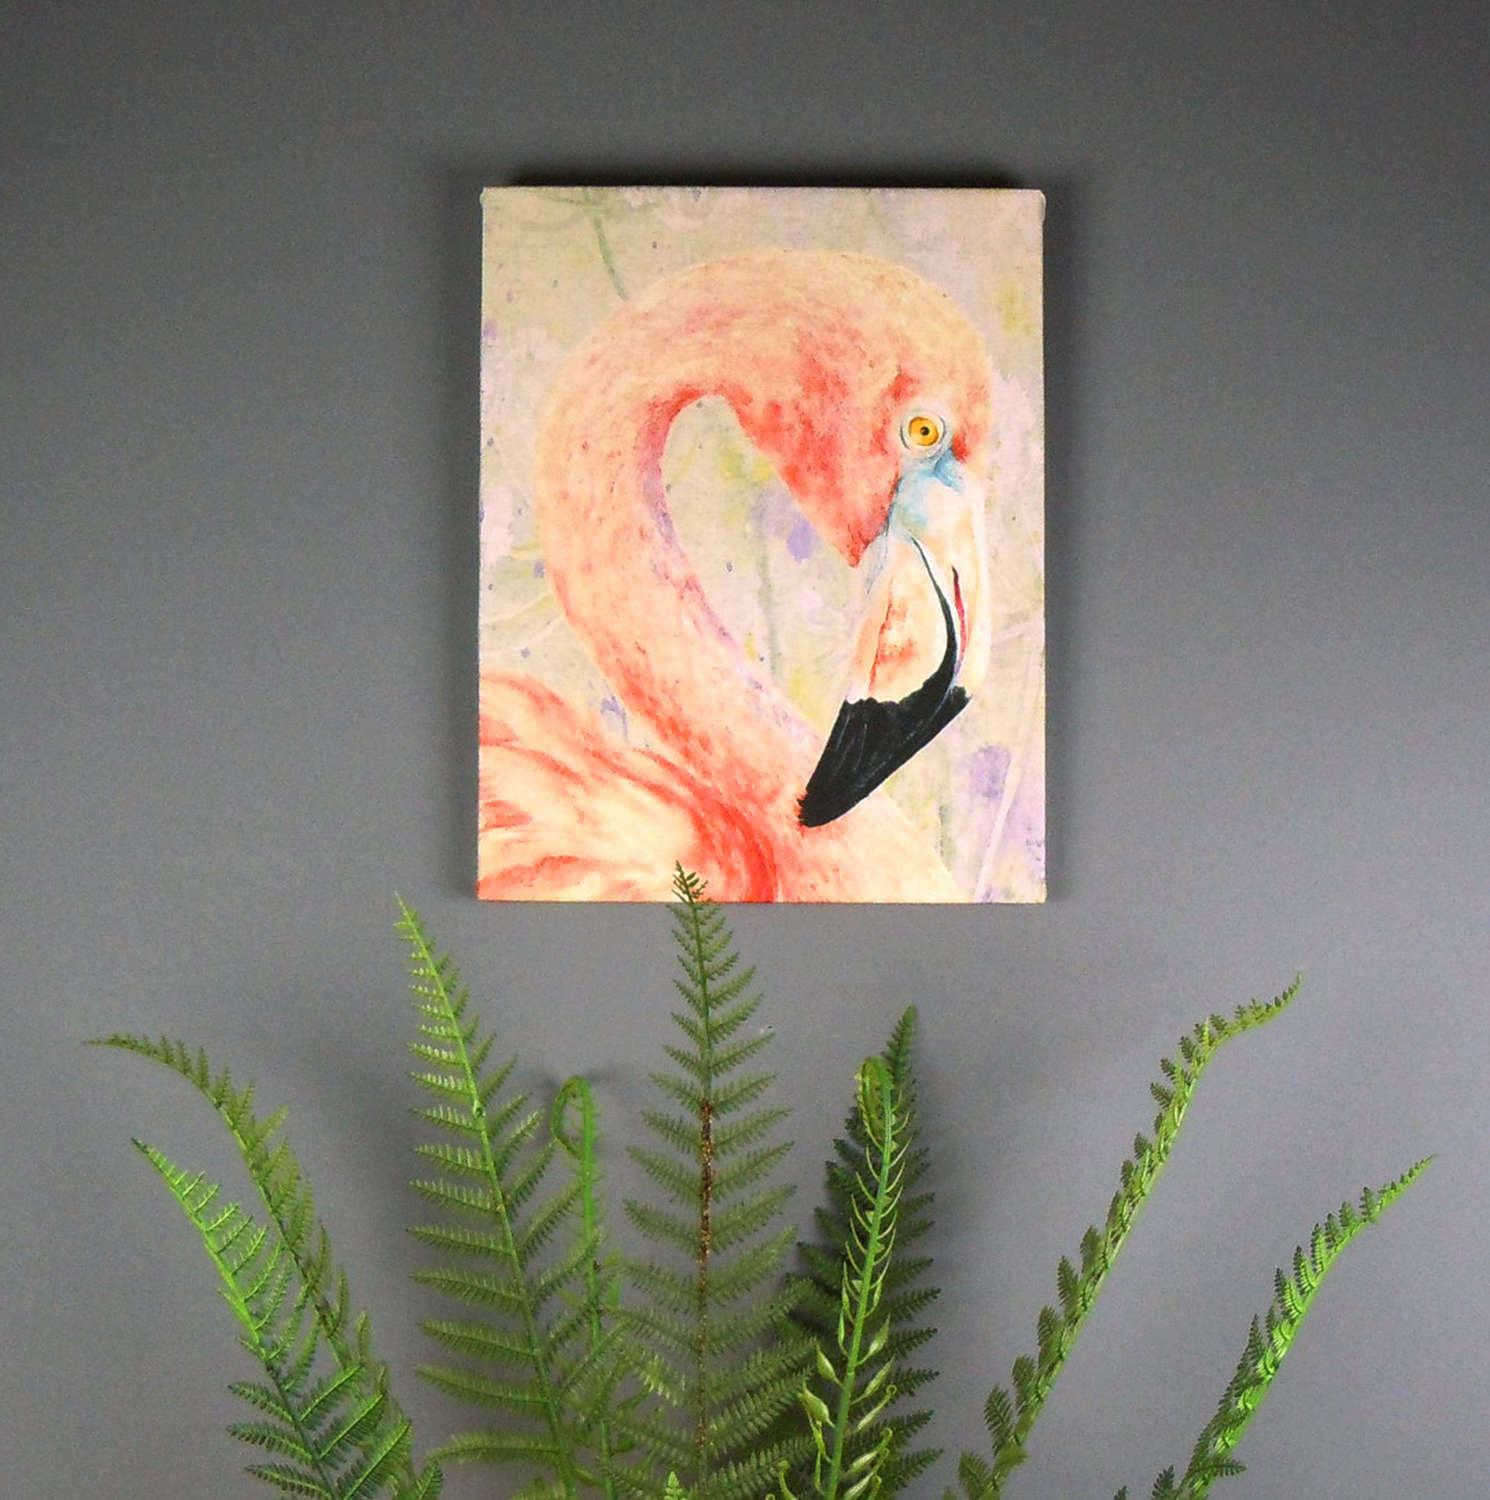 Flamingo watercolour printed on canvas by Jane Bannon Field & Fur